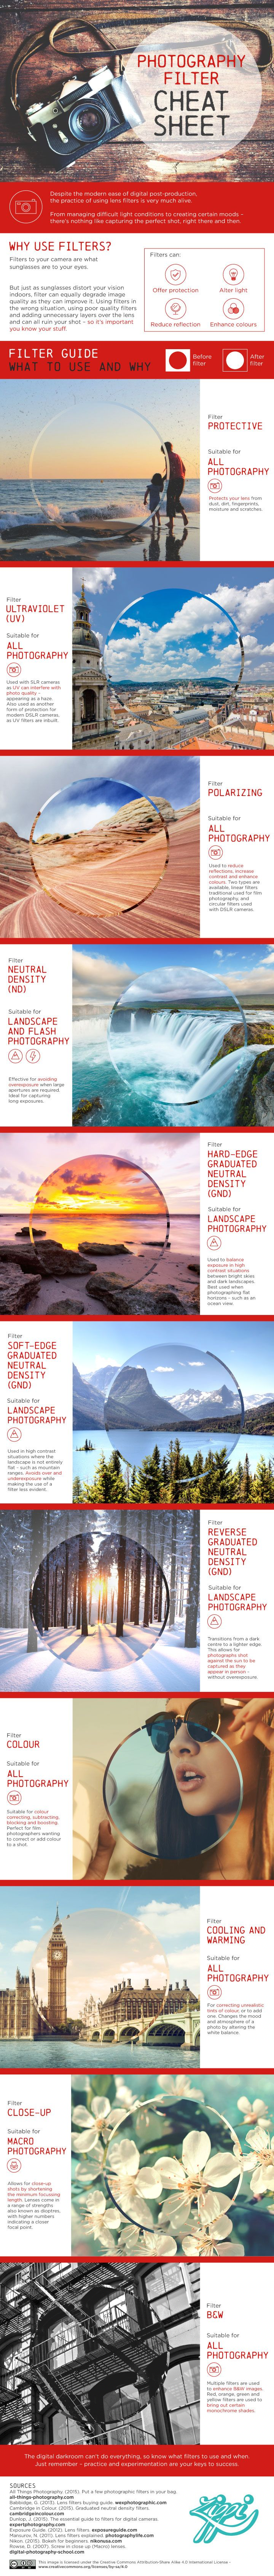 Photography Filters | A Guide for Where, When and How to Use Them [Infographic]